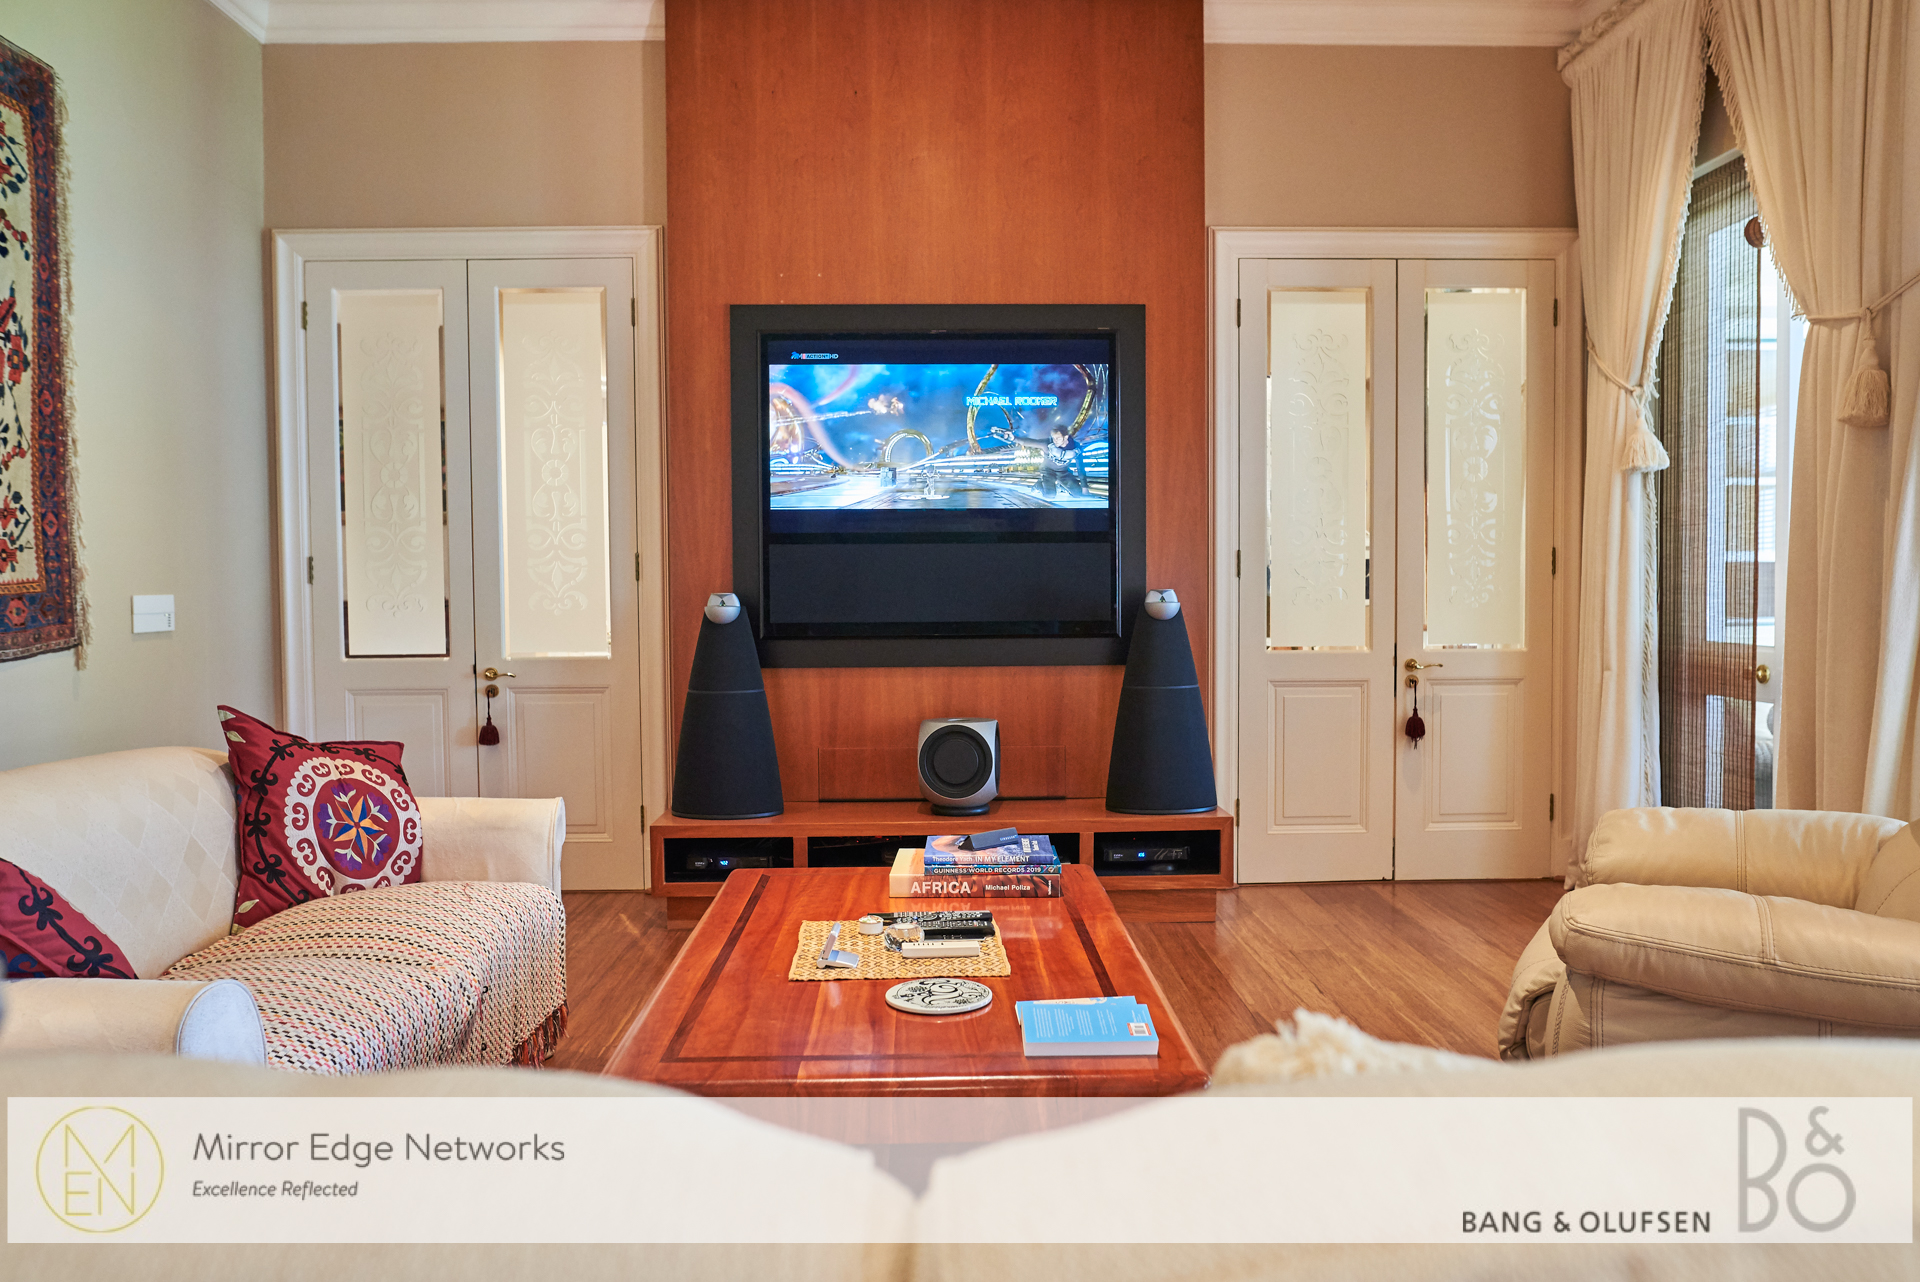 BeoVision 11-55 television installed on wall mount television bracket with BeoLab 9 floor standing HiFi speakers and BeoLab 2 subwoofer